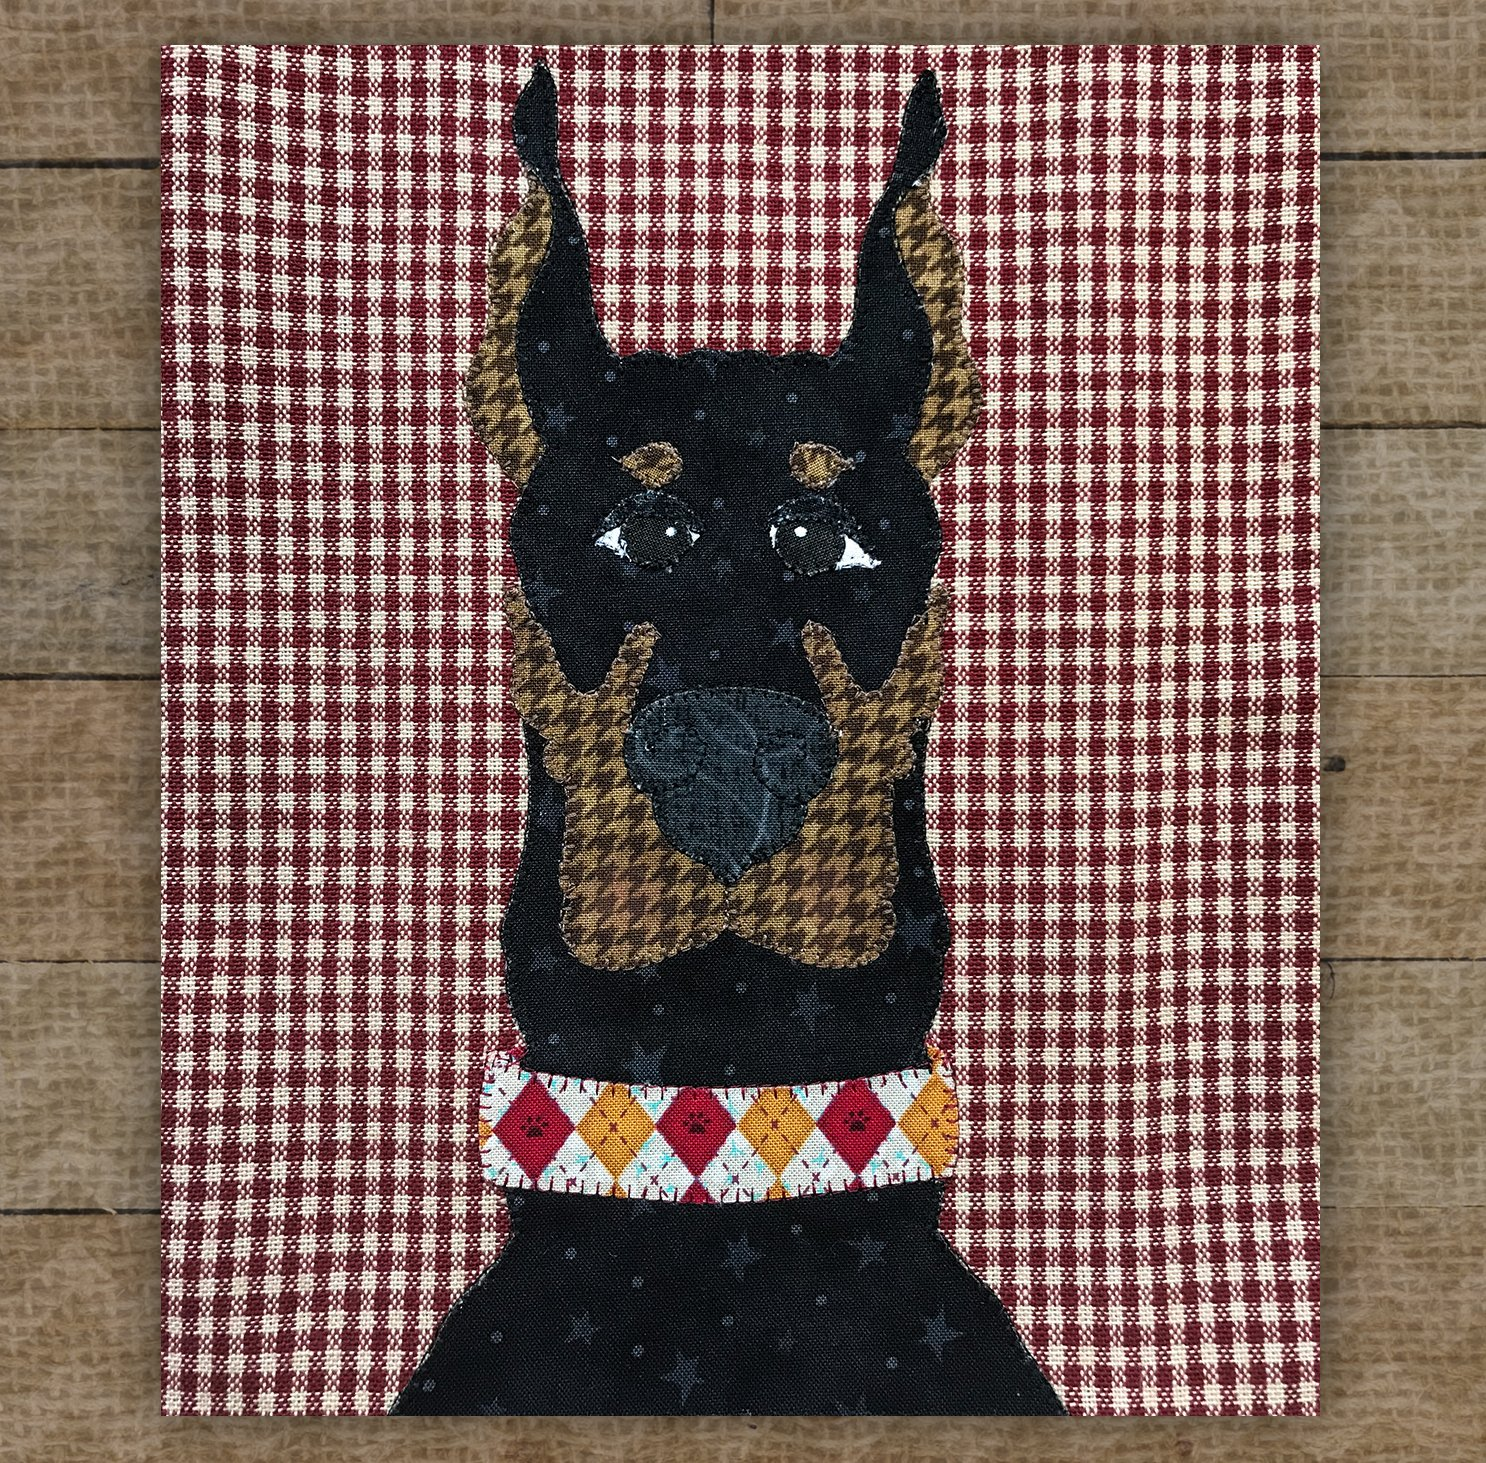 Doberman Pinscher Black - Precut Fused Applique Kit